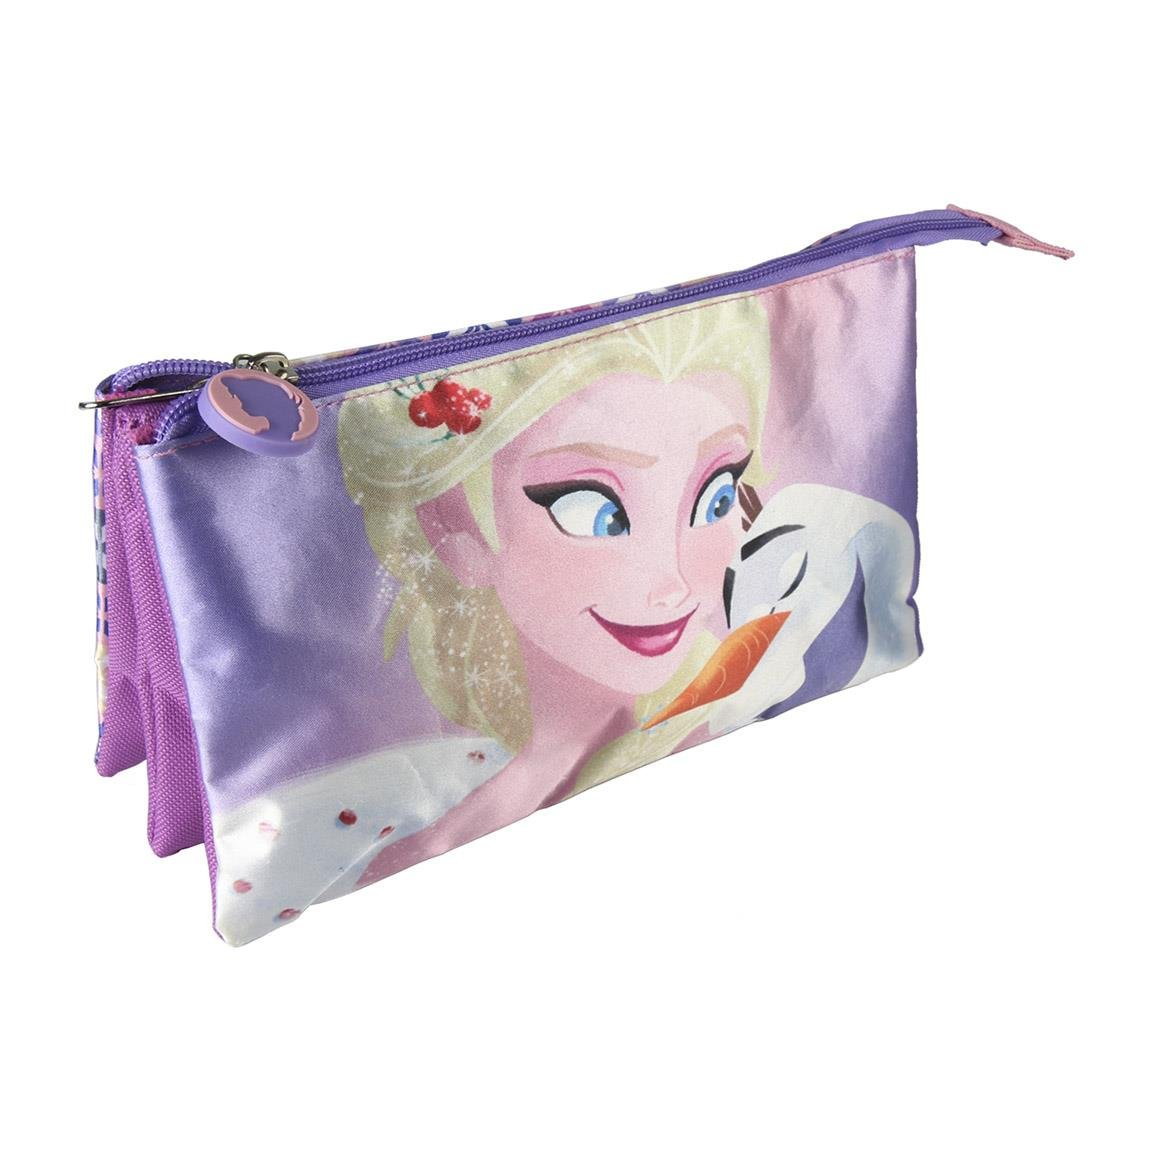 Disney Frozen-CD-21-2150 Frozen Estuches portatodo y portaflautas, Multicolor, 22 cm (ARTESANIA CERDA CD-21-2150)